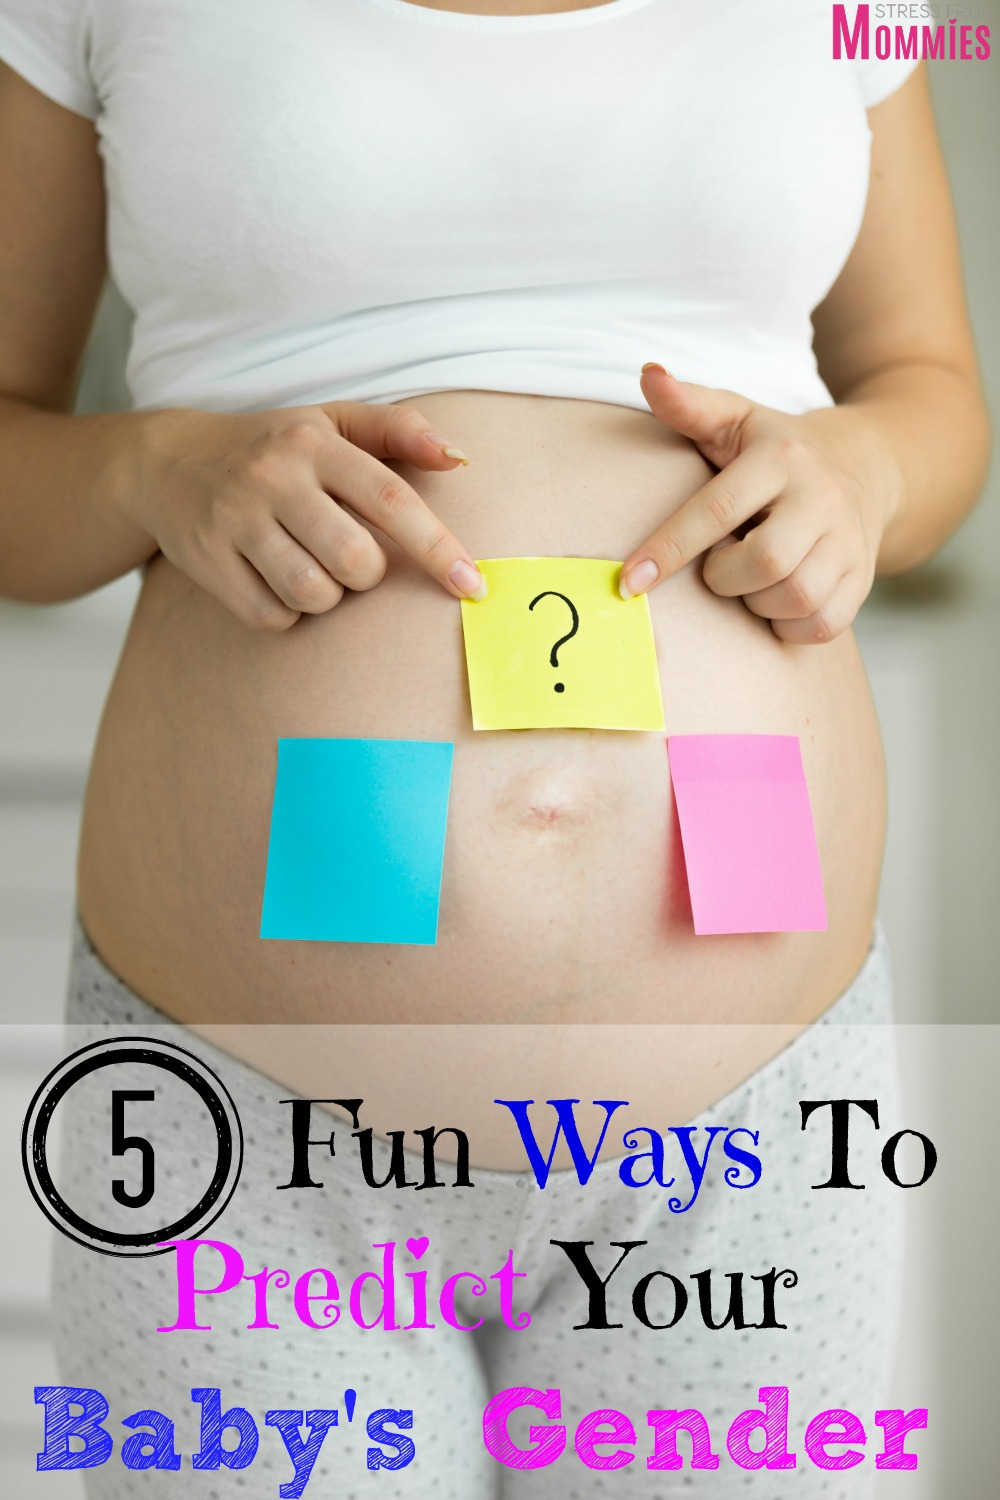 5 Fun Ways You Can Predict Your Baby's Gender - Stress ...